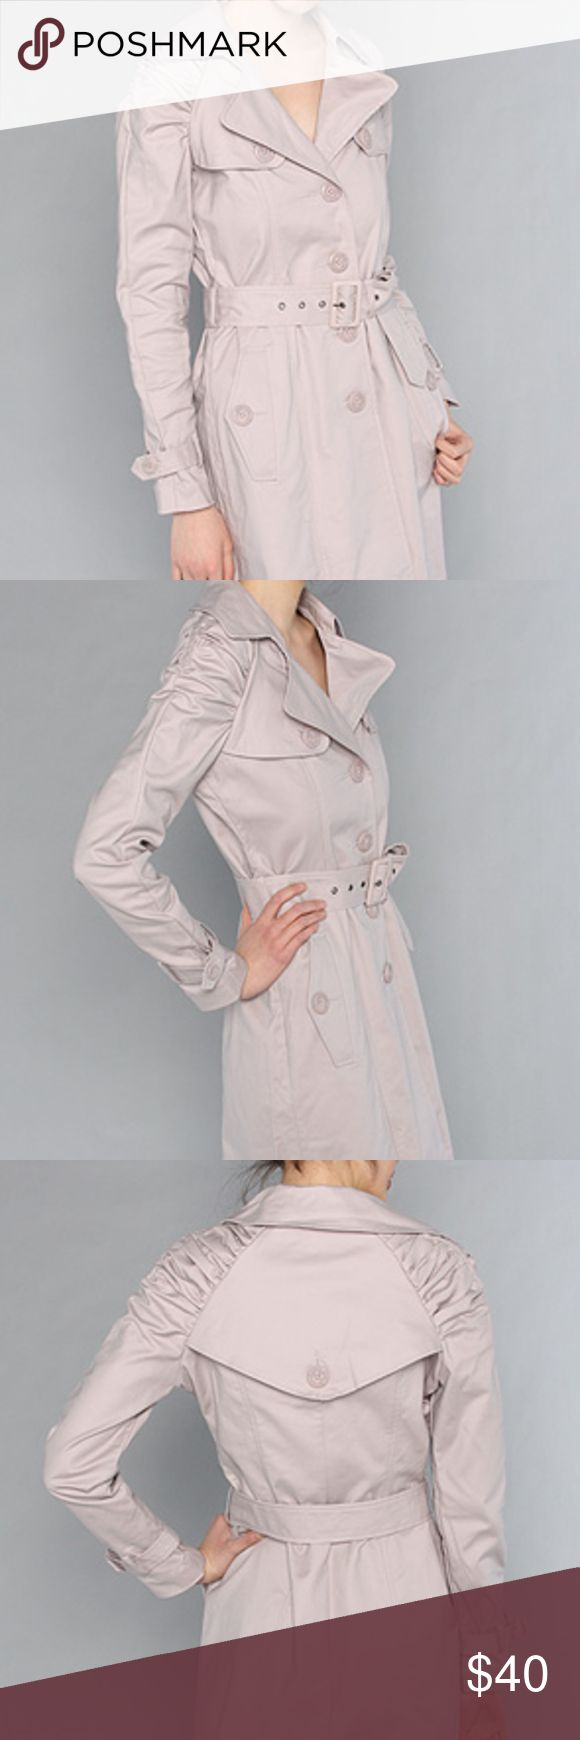 NWT BB Dakota Southard Jacket (Ruched Trench) BB Dakota Southard Jacket / Large / NWT, never worn / Cloud Violet (light, dusty lavender) / Twill mid-length belted trench with button closure / Ruching on shoulders / Button flap side pockets / Button flap cuff fasteners / Button flap back yoke / 95% Cotton, 3% Polyester, 2% Spandex BB Dakota Jackets & Coats Trench Coats